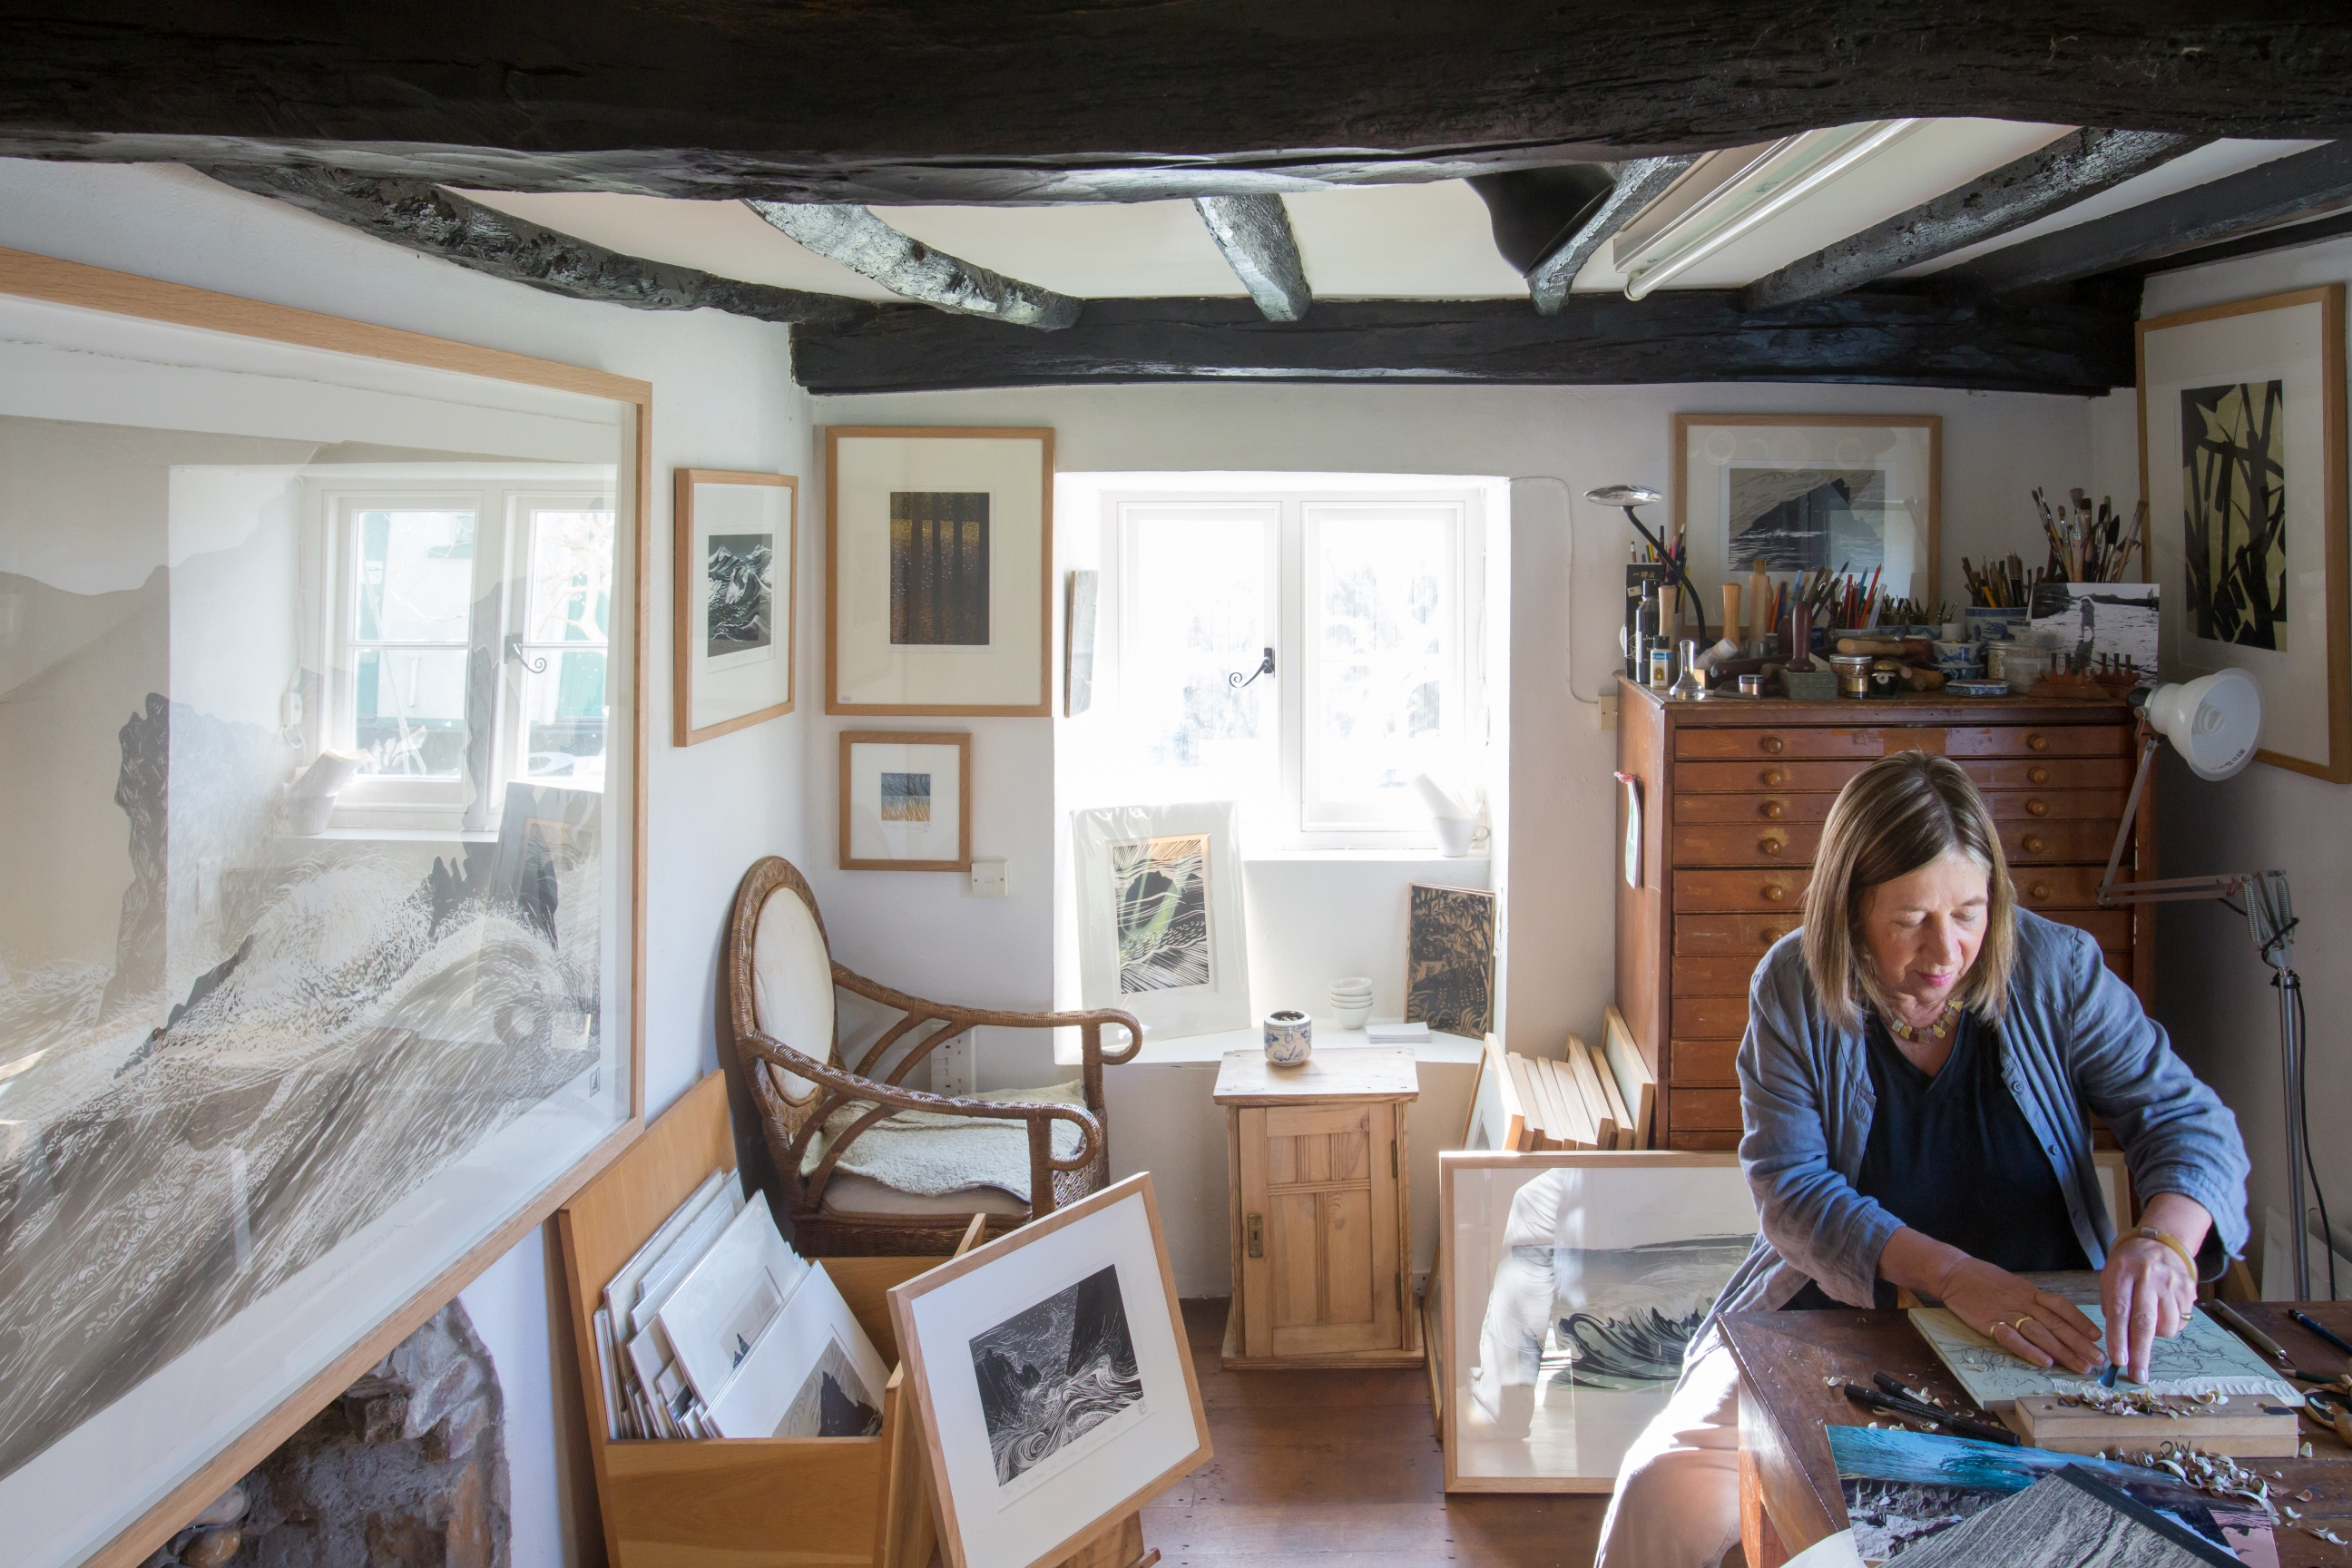 Merlyn Chesterman working in her studio at 2 Harton Manor, B&B and studio at Hartland Devon